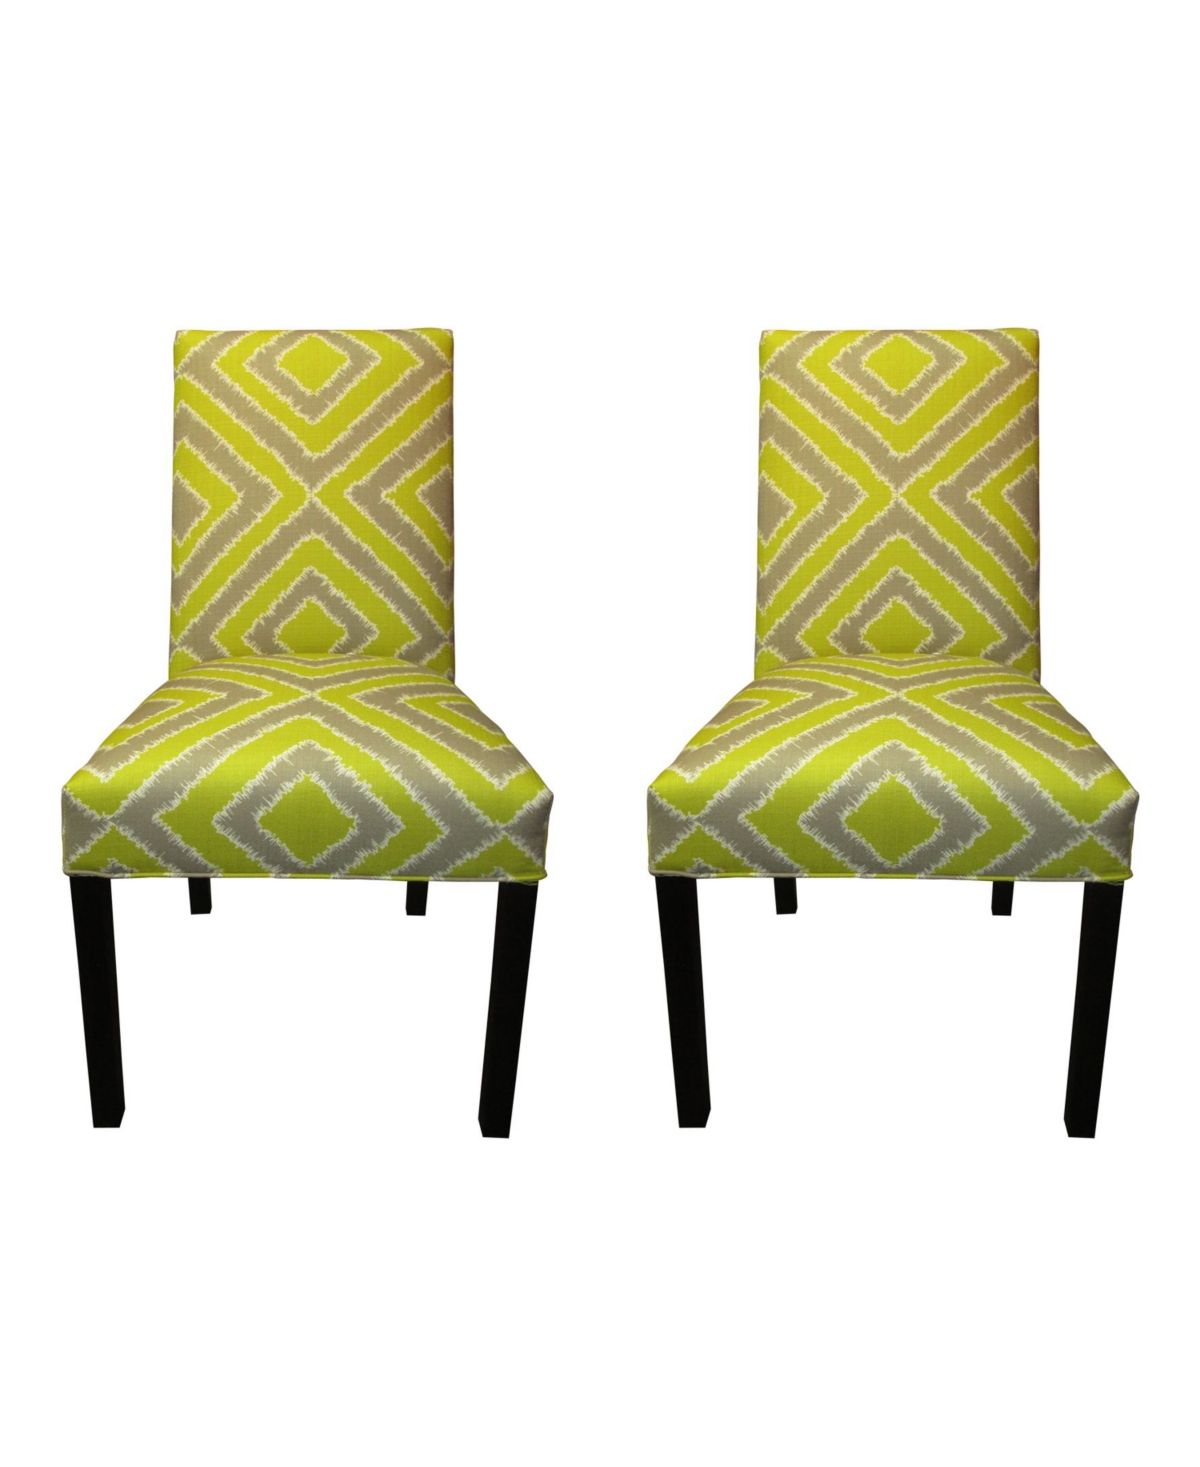 Sole Designs Nouvea Upholstered Dining Chair Set, Set of 2 ...